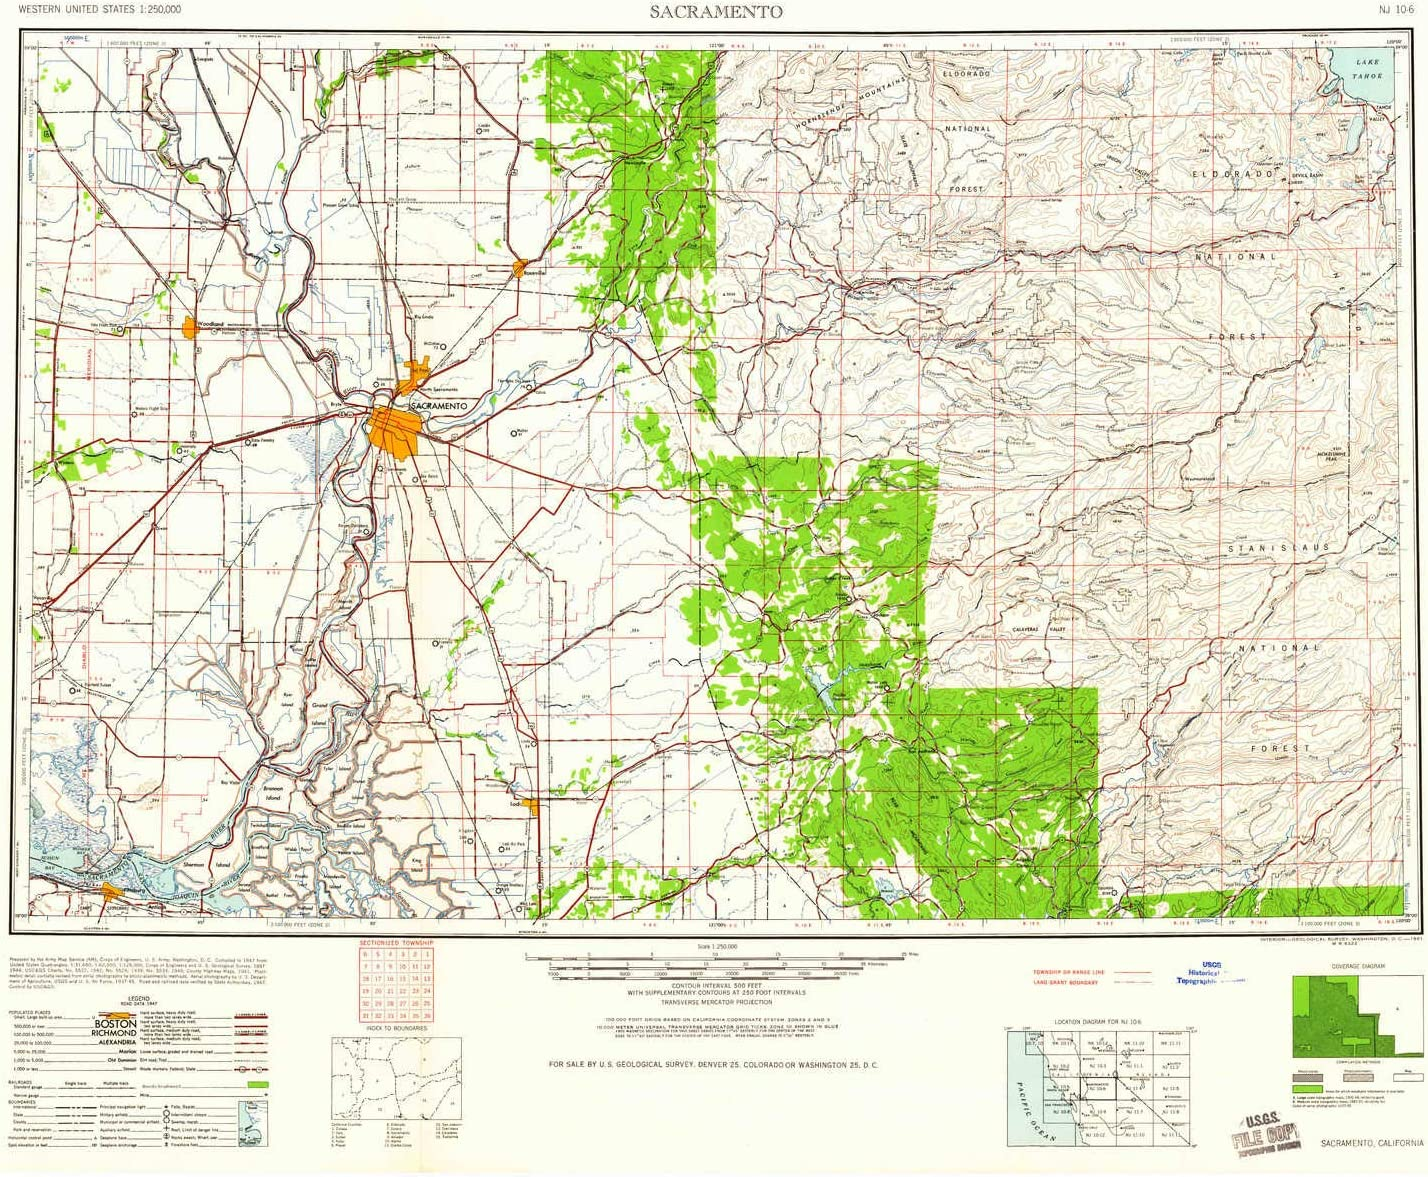 amazon com yellowmaps sacramento ca topo map 1 250000 scale 1 x 2 degree historical 1947 updated 1961 24 1 x 30 2 in paper sports outdoors yellowmaps sacramento ca topo map 1 250000 scale 1 x 2 degree historical 1947 updated 1961 24 1 x 30 2 in